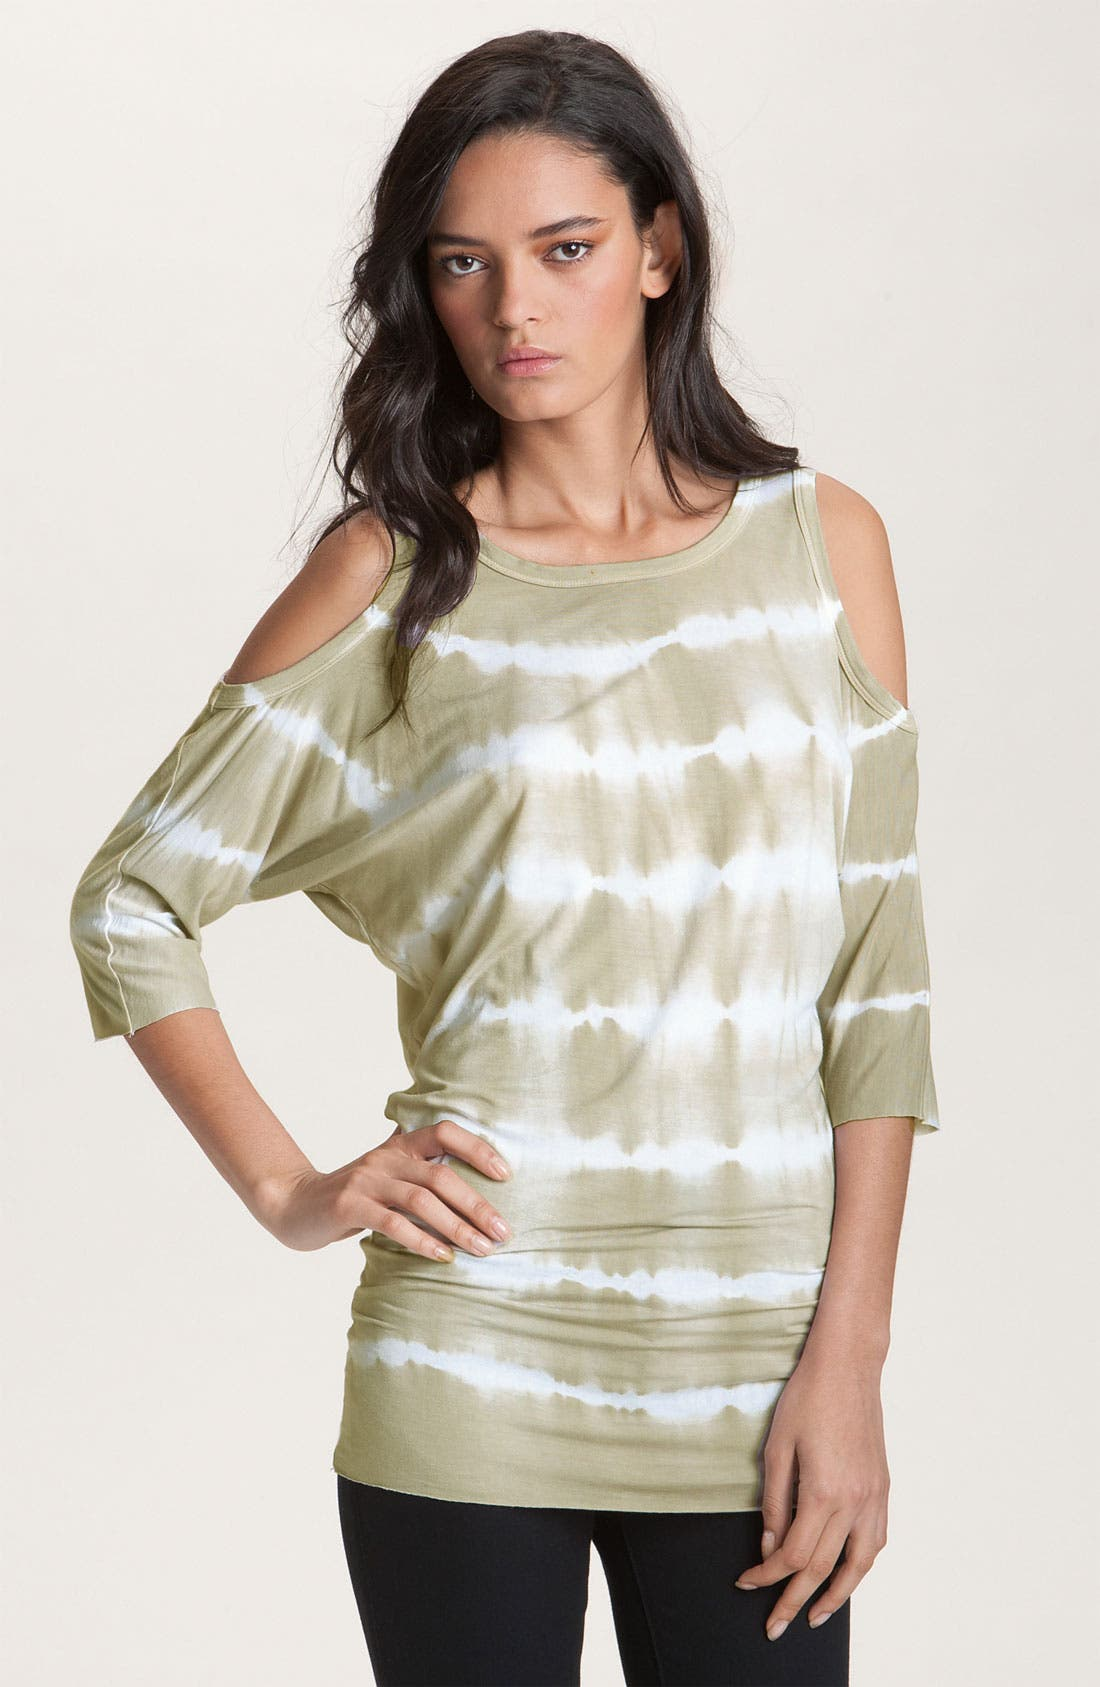 Alternate Image 1 Selected - Bailey 44 'Wildebeest' Cutout Shoulder Tie Dye Dolman Top